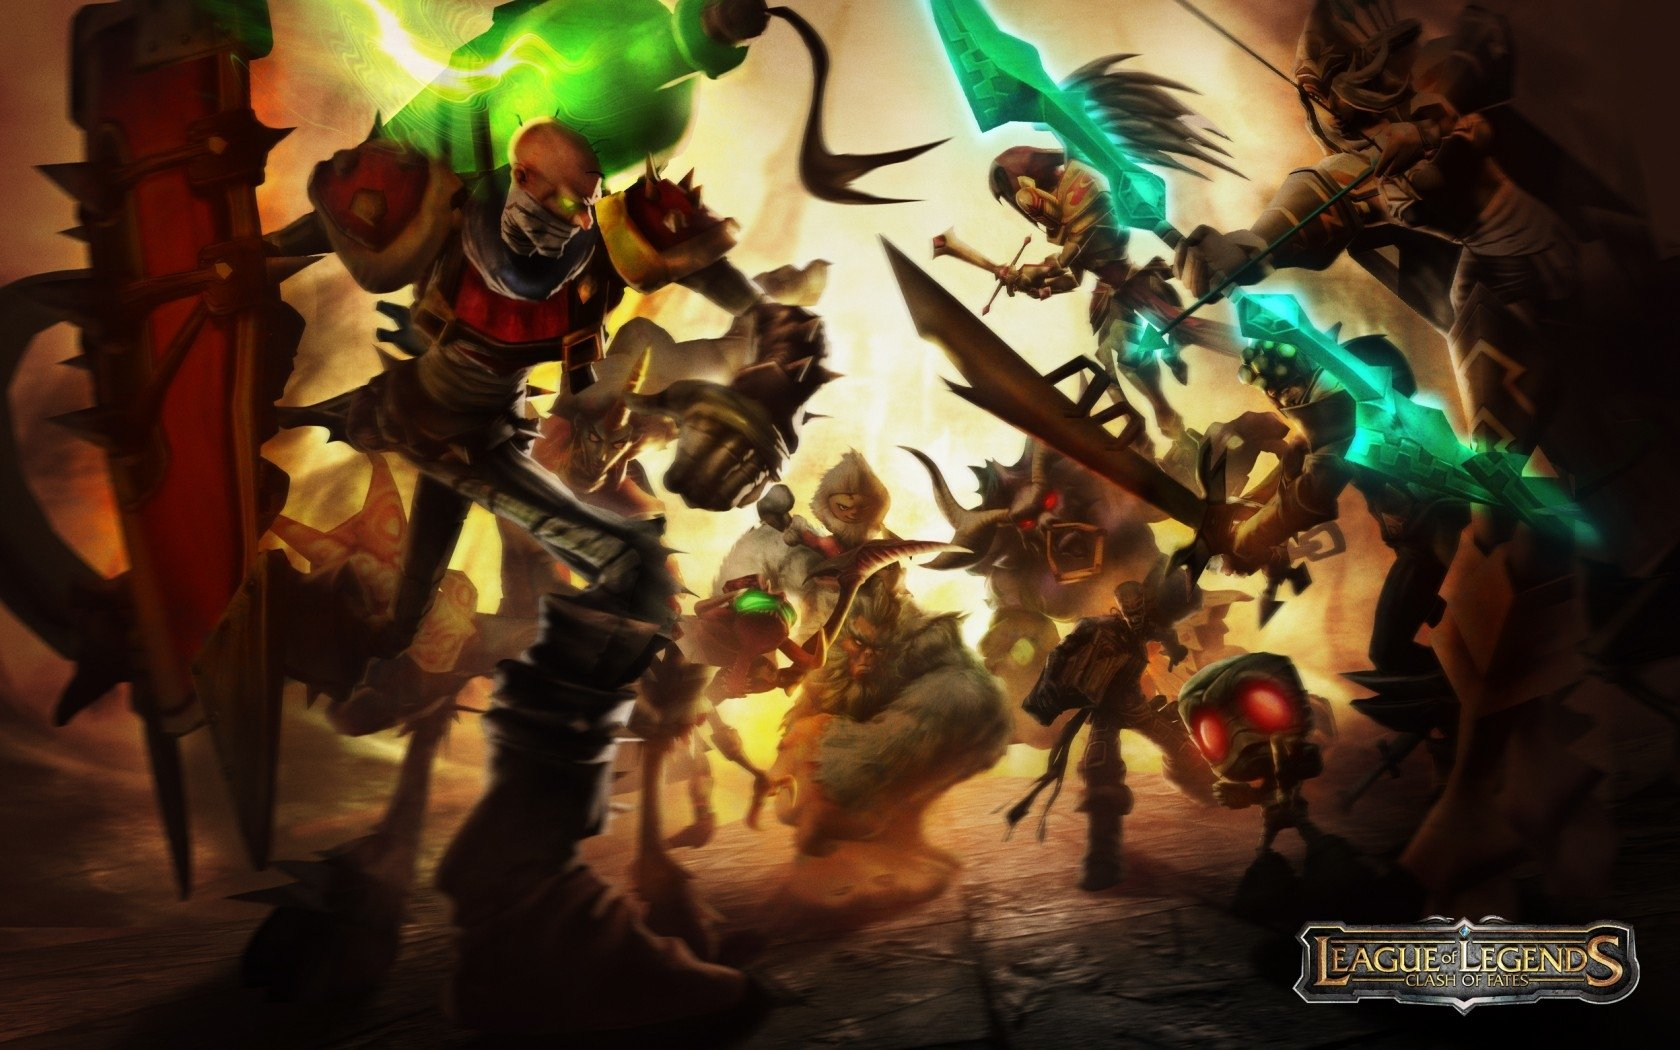 League of legends wallpaper pack - Hd Wallpaper Background Id 160345 1680x1050 Video Game League Of Legends